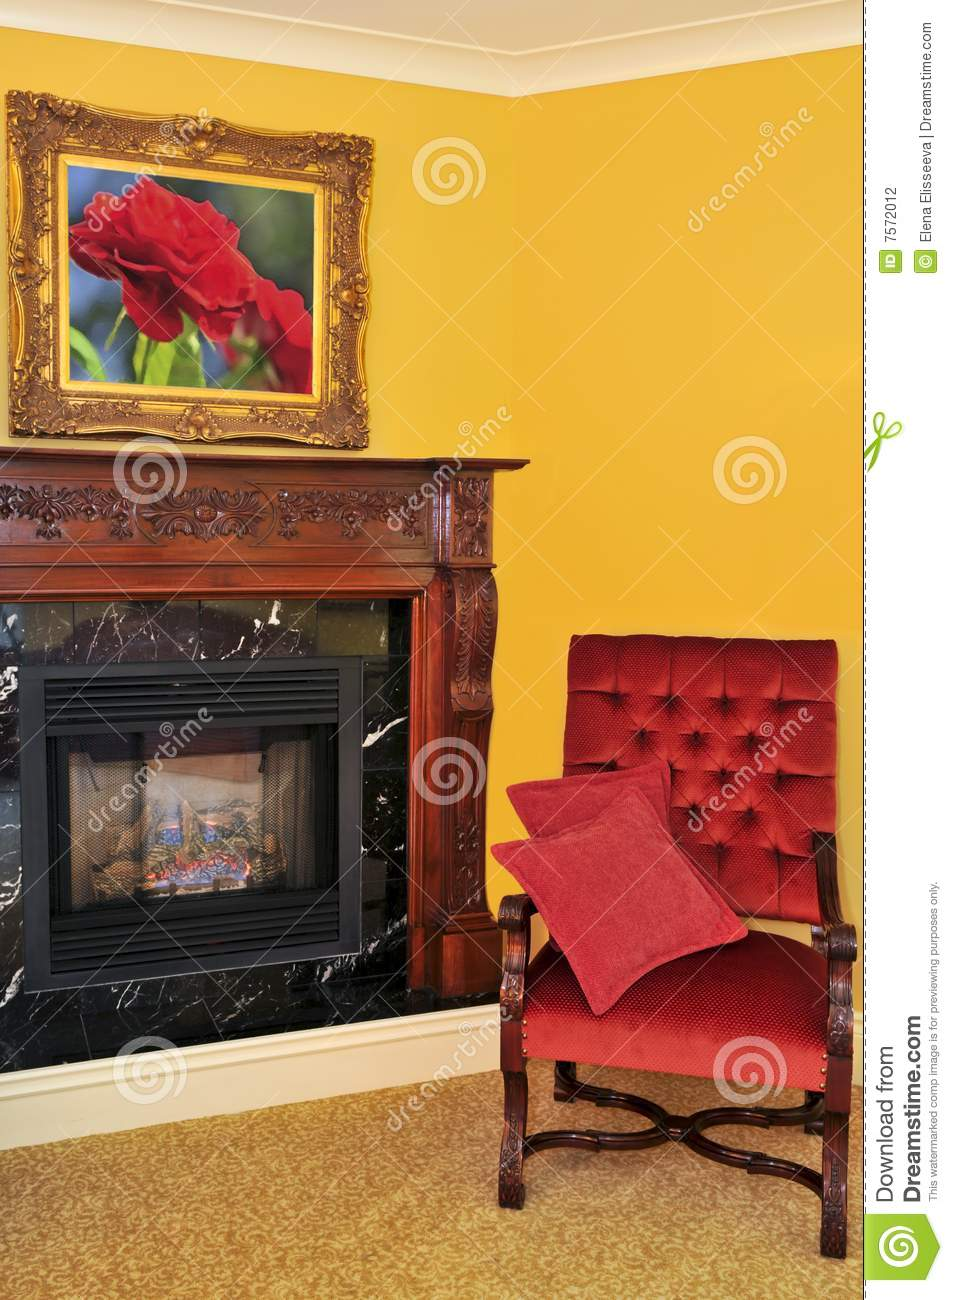 1800s Country Homes: Fireplace And Red Chair Stock Photography